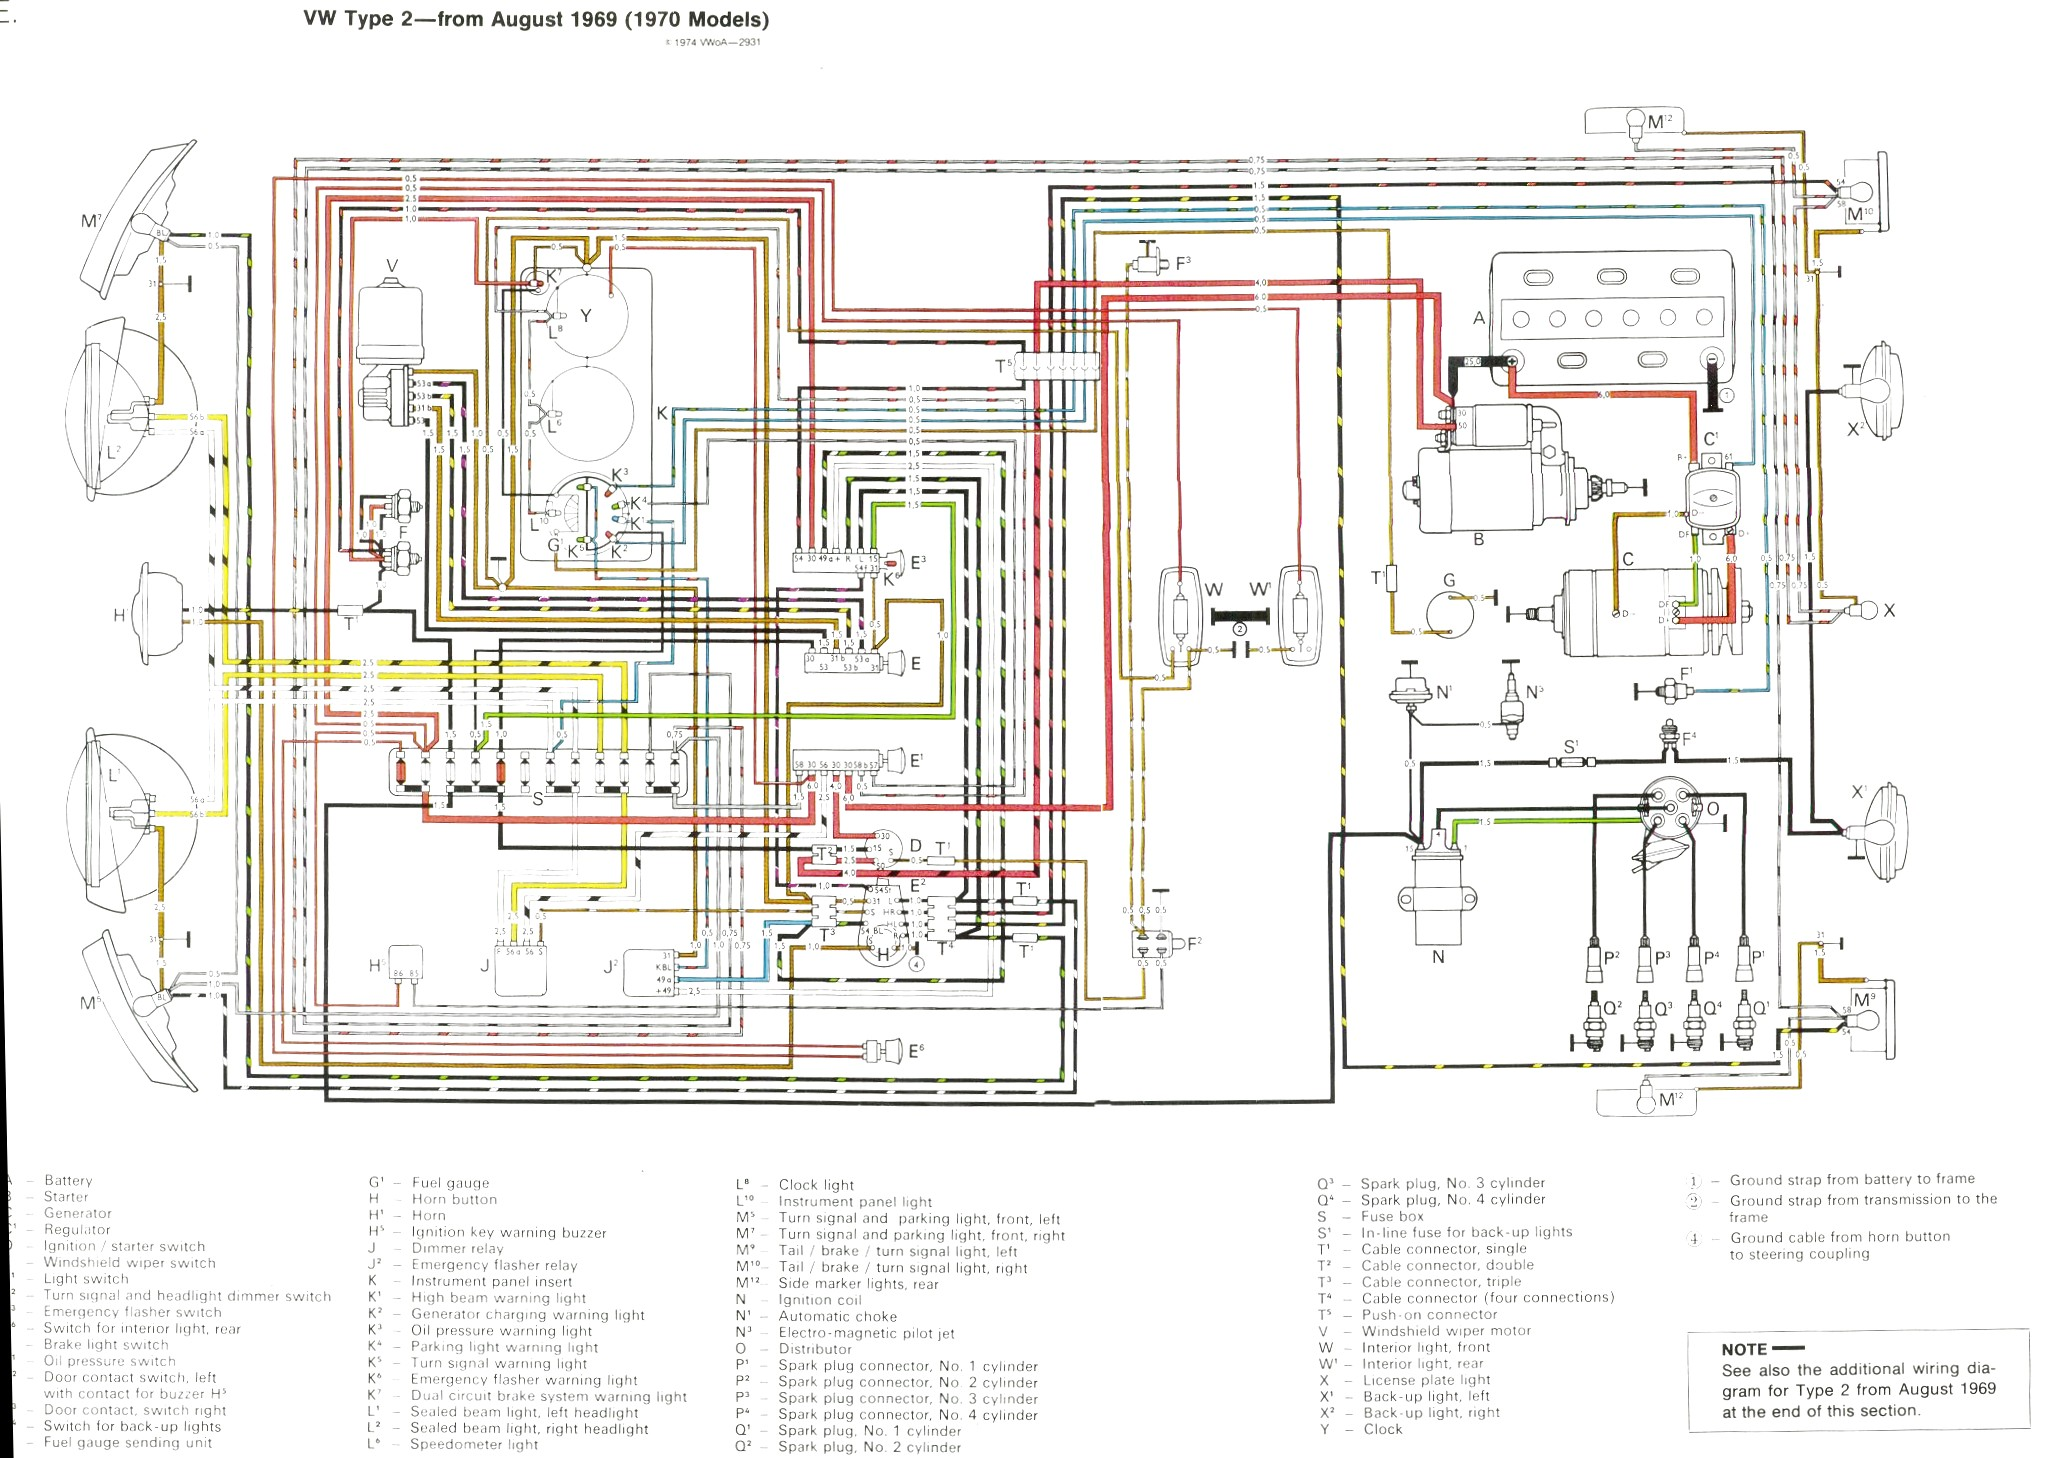 bus 69 70 vintagebus com vw bus (and other) wiring diagrams Wiring Harness Diagram at gsmportal.co